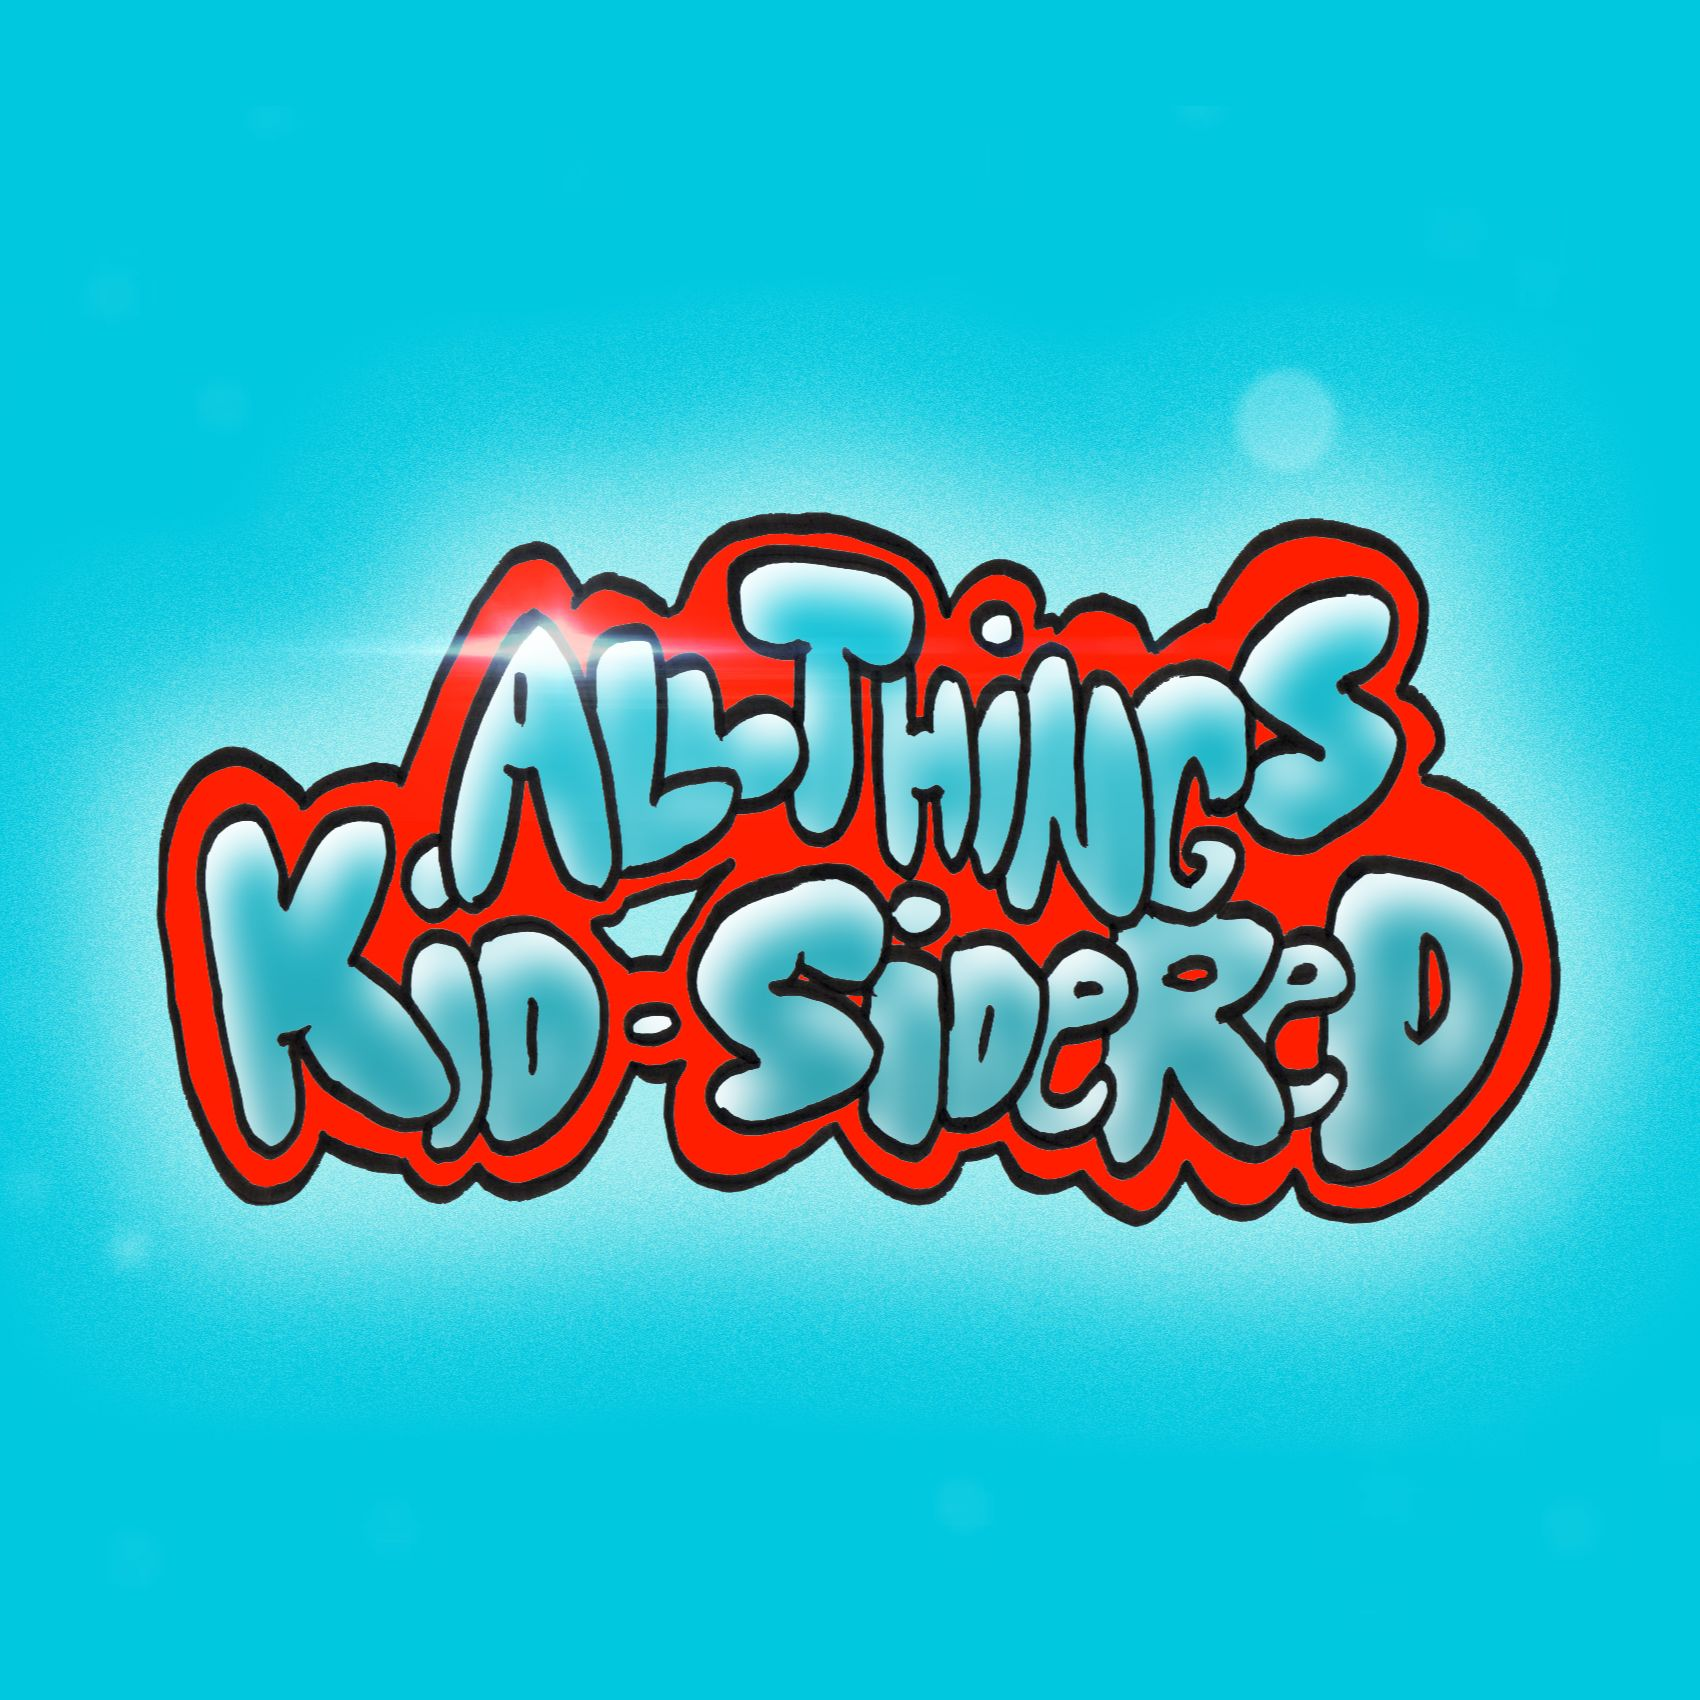 All Things Kid-Sidered